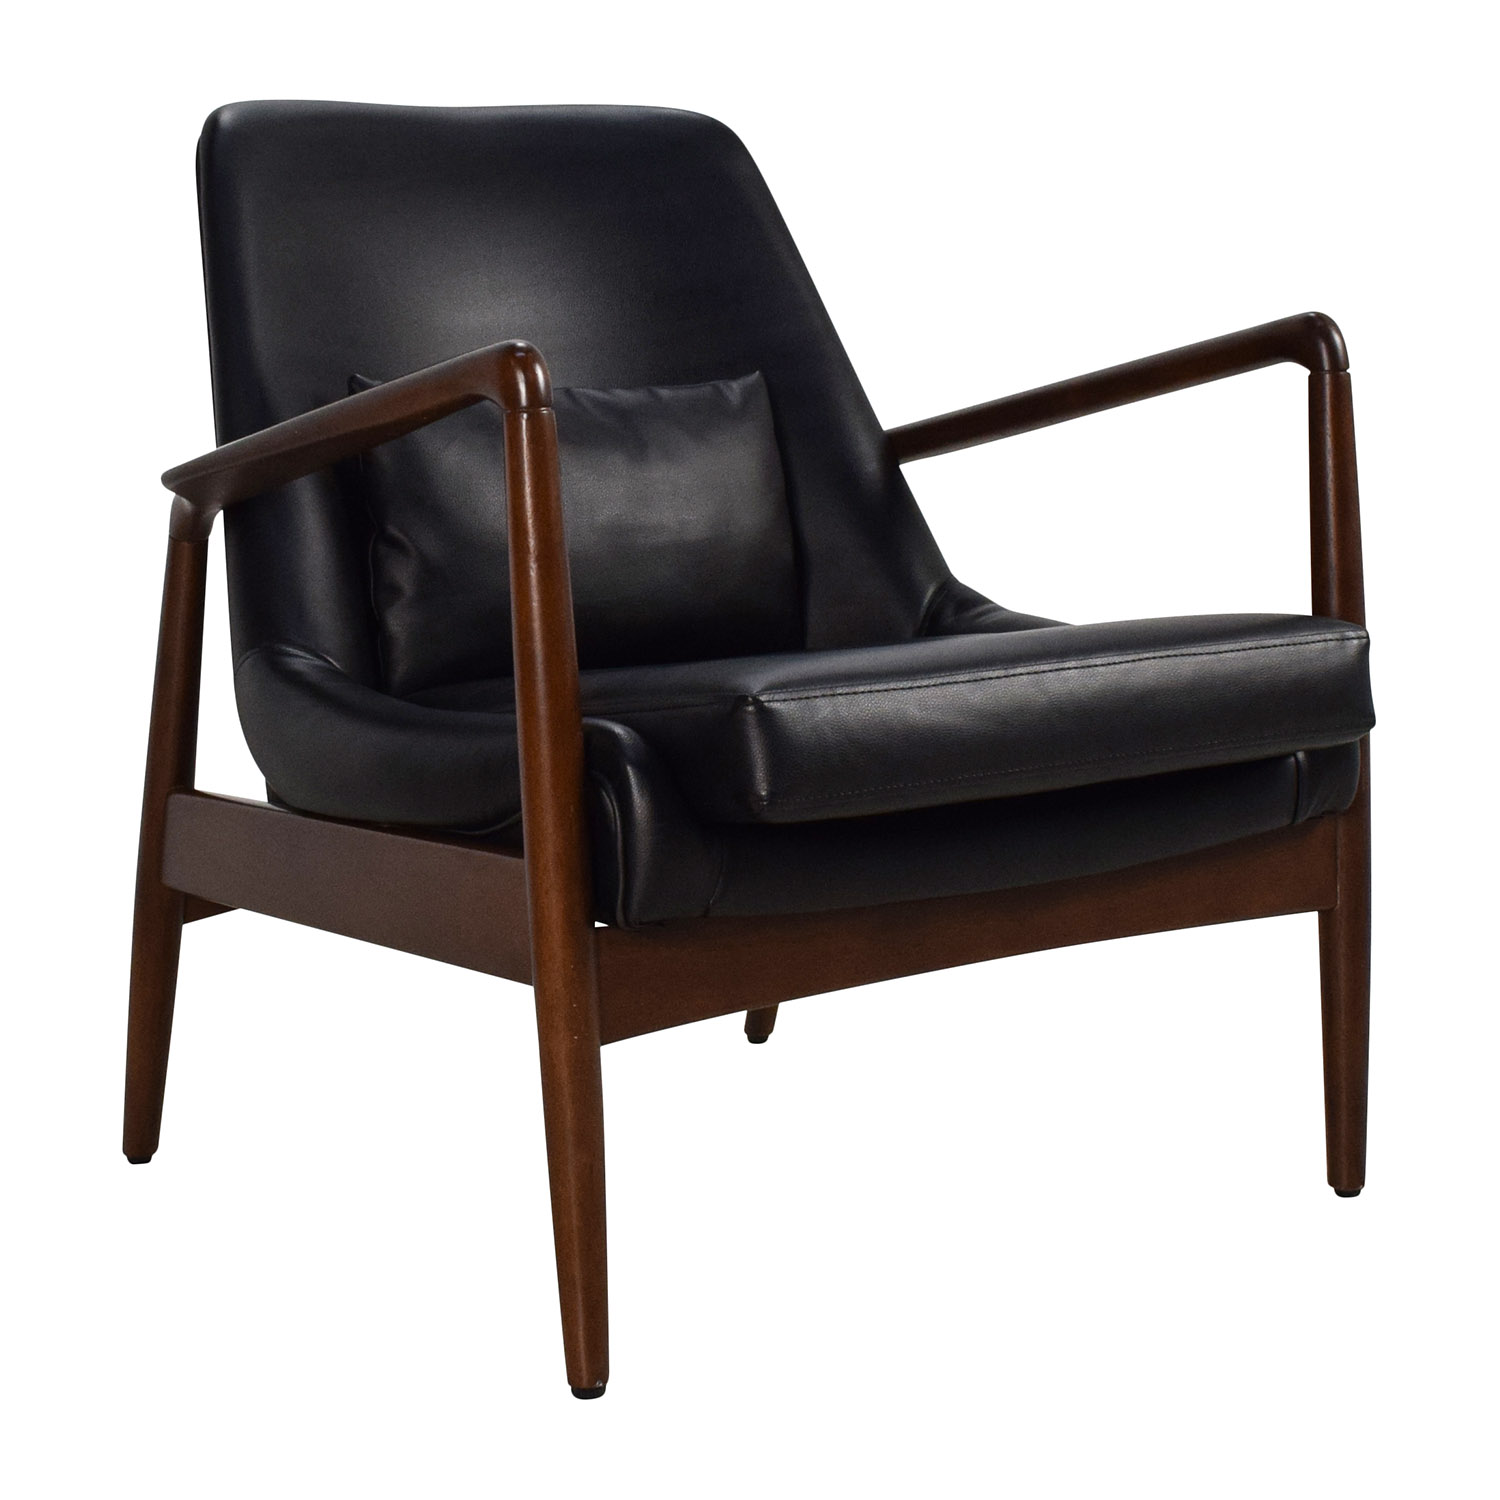 Sessel Schwarz Leder 62 Off Black Leather Lounge Chair Chairs